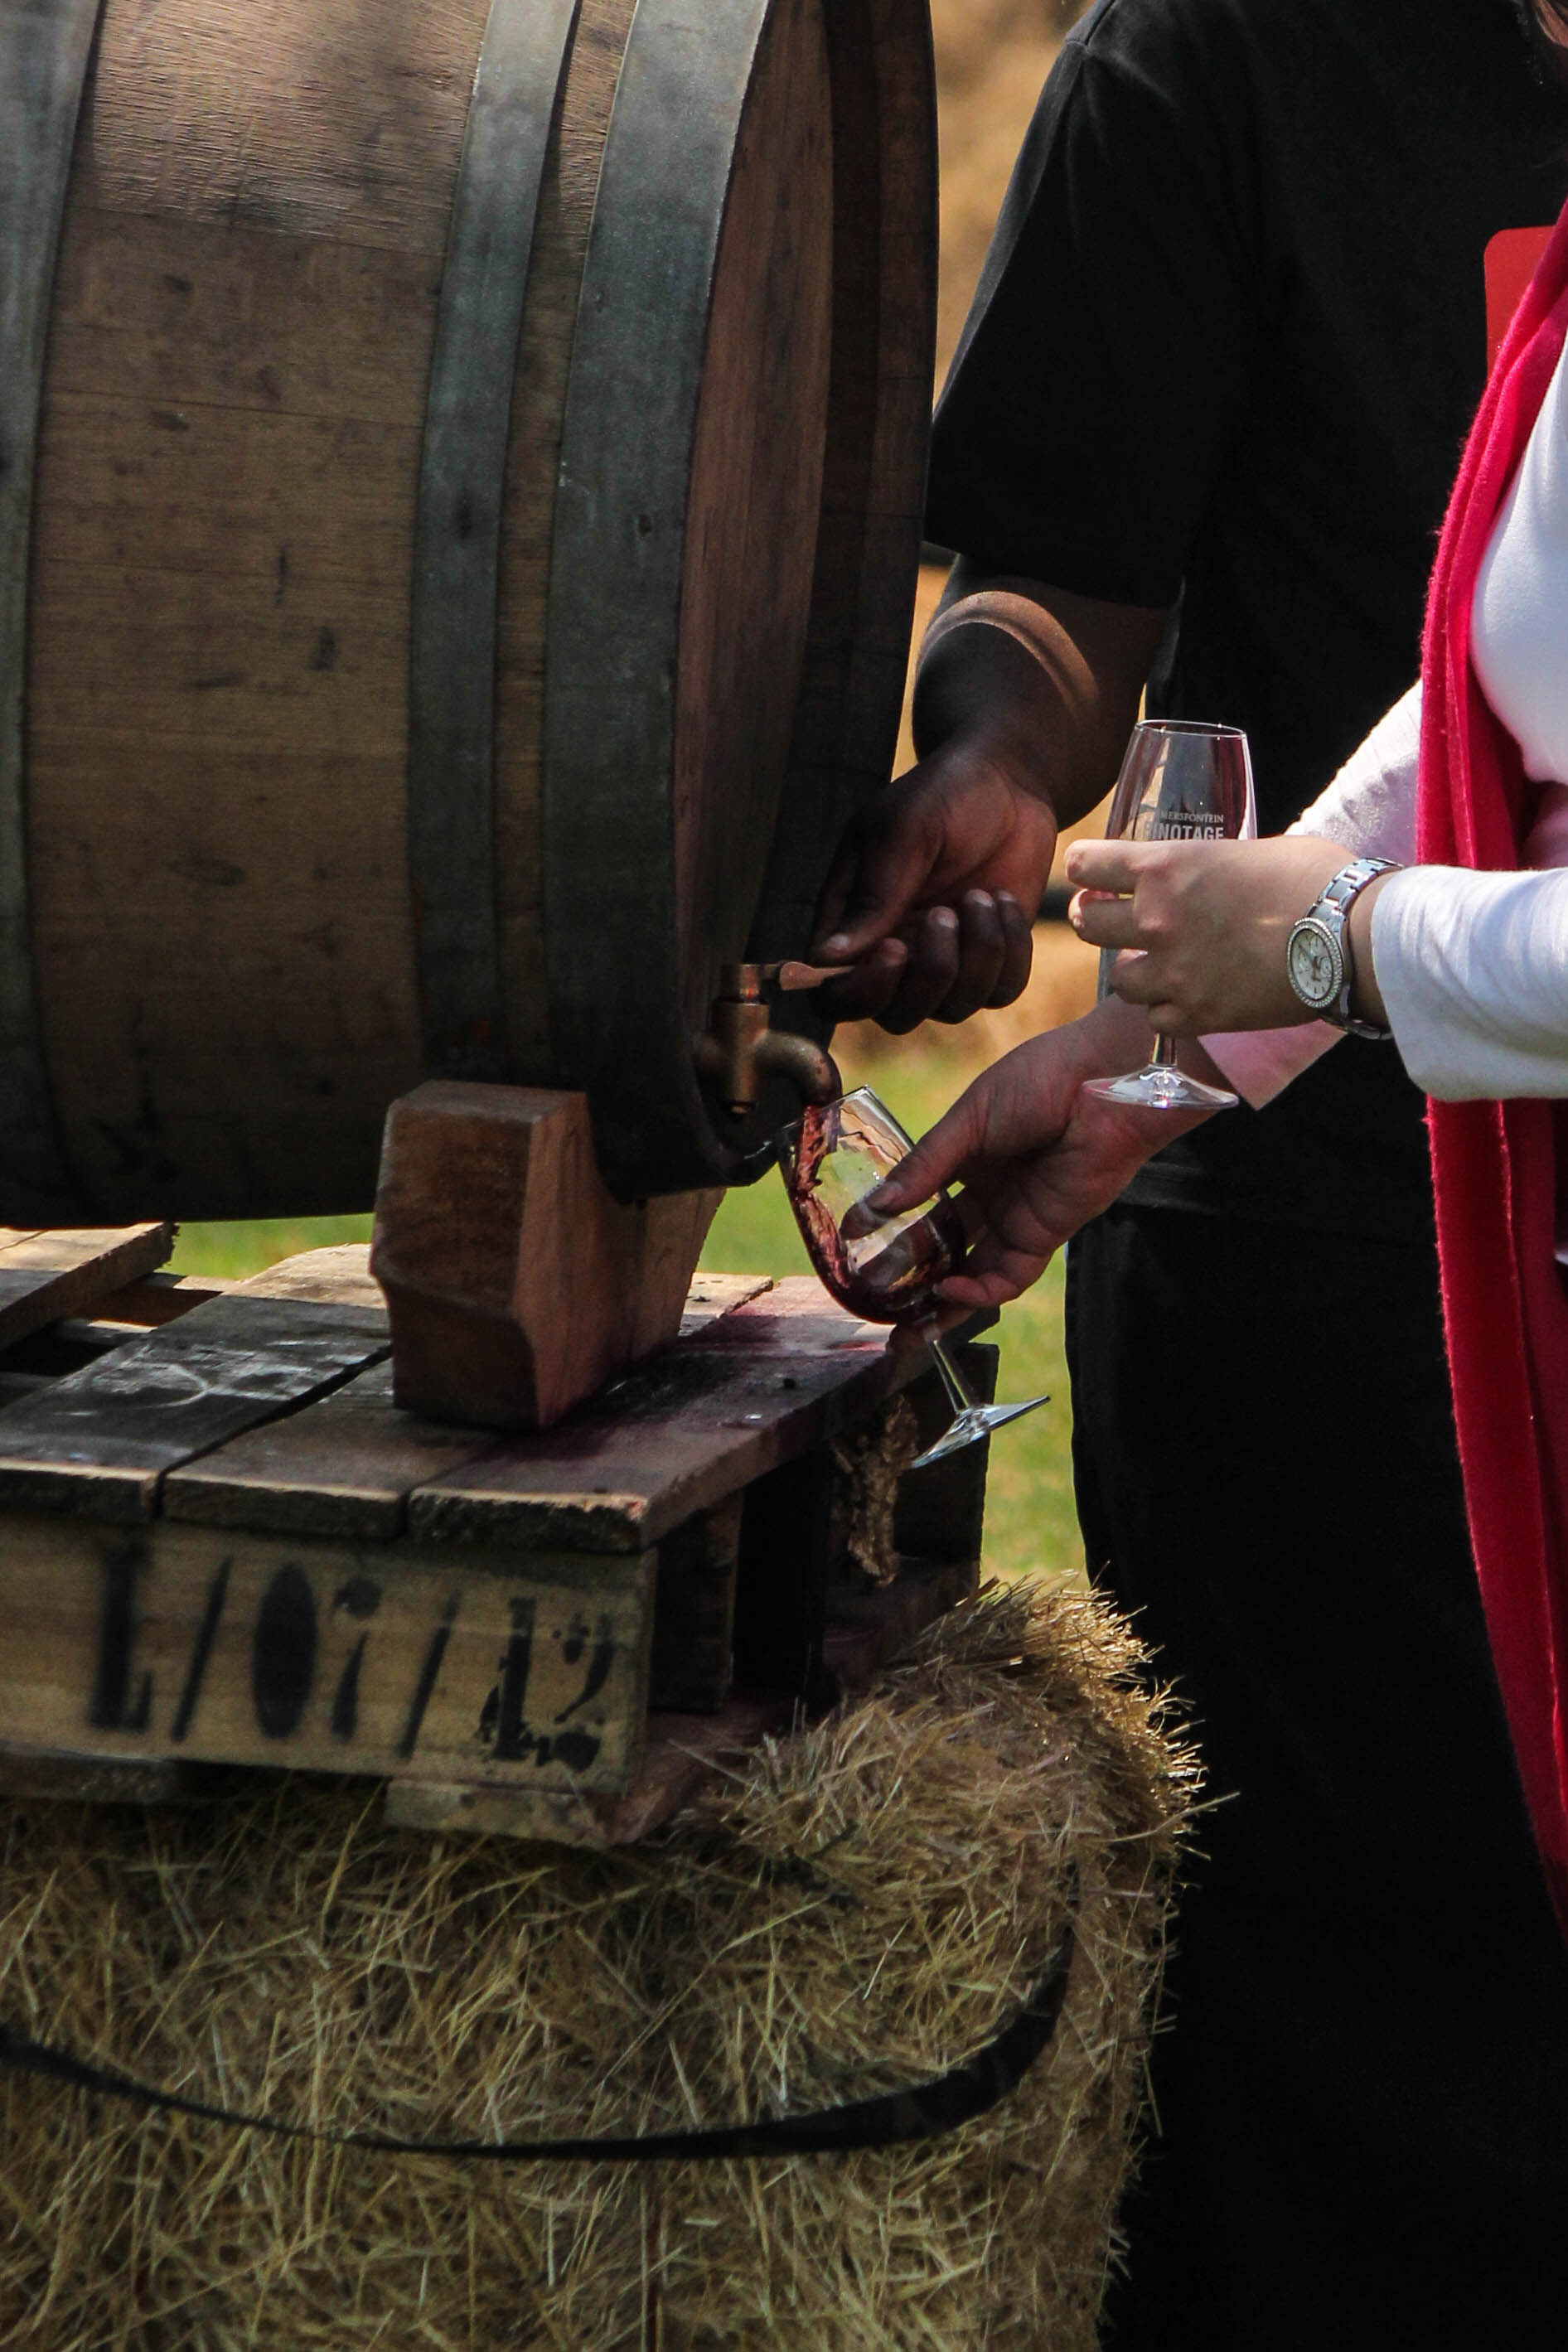 Event: Pinotage on Tap Wine Festival 2015